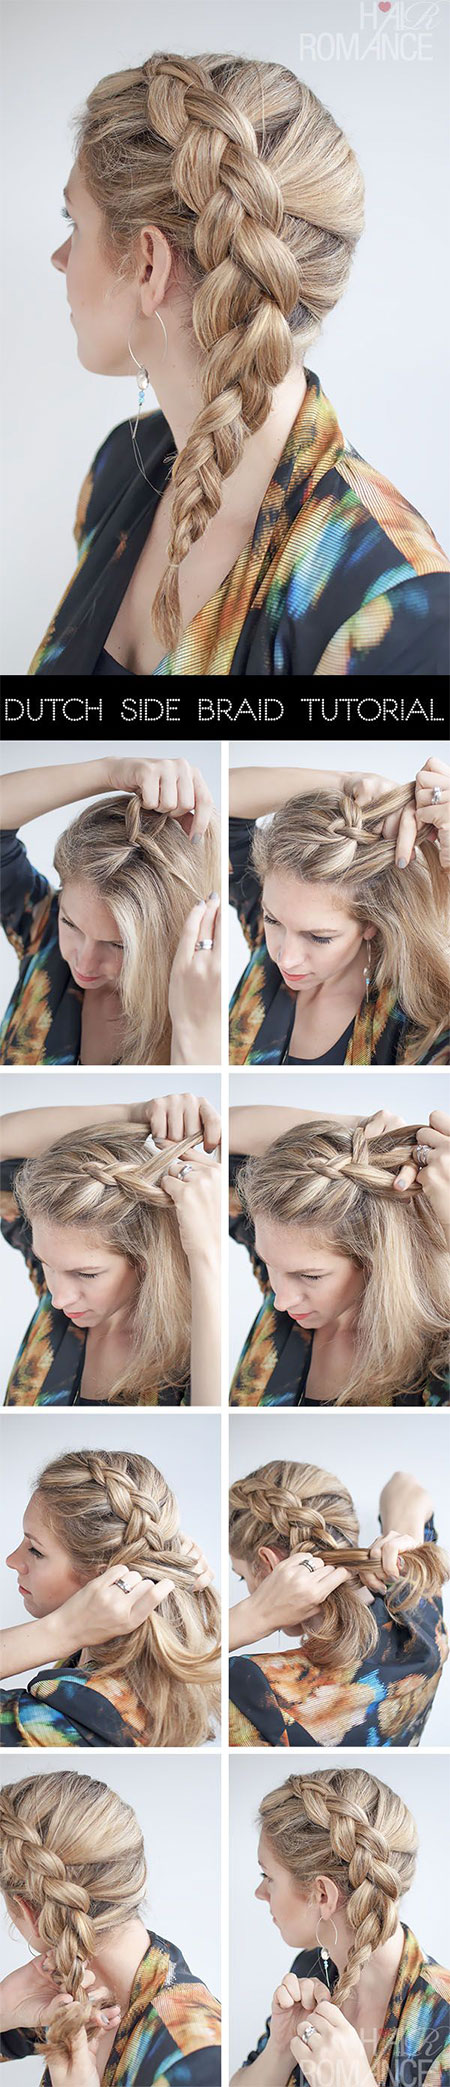 25-Fun-Quick-Spring-Summer-Hairstyle-Tutorials-2014-For-Girls-Women-16